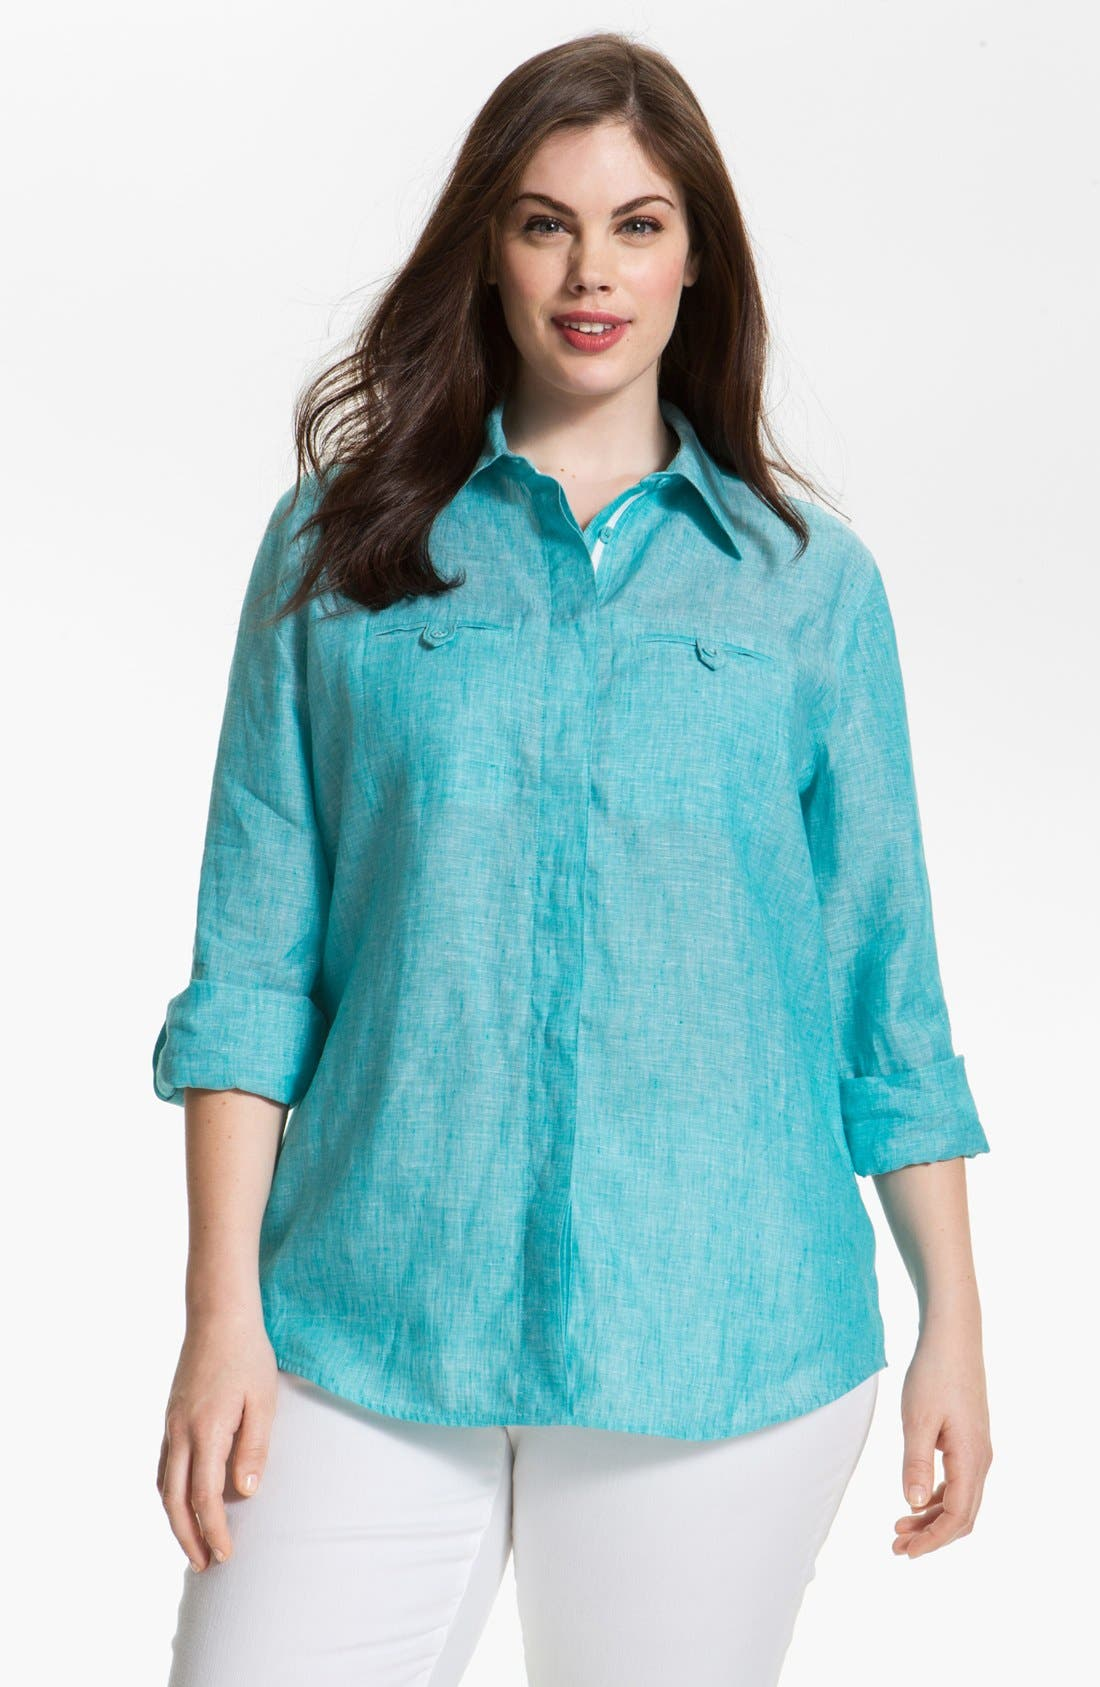 Alternate Image 1 Selected - Foxcroft Linen Shaped Shirt (Plus Size)